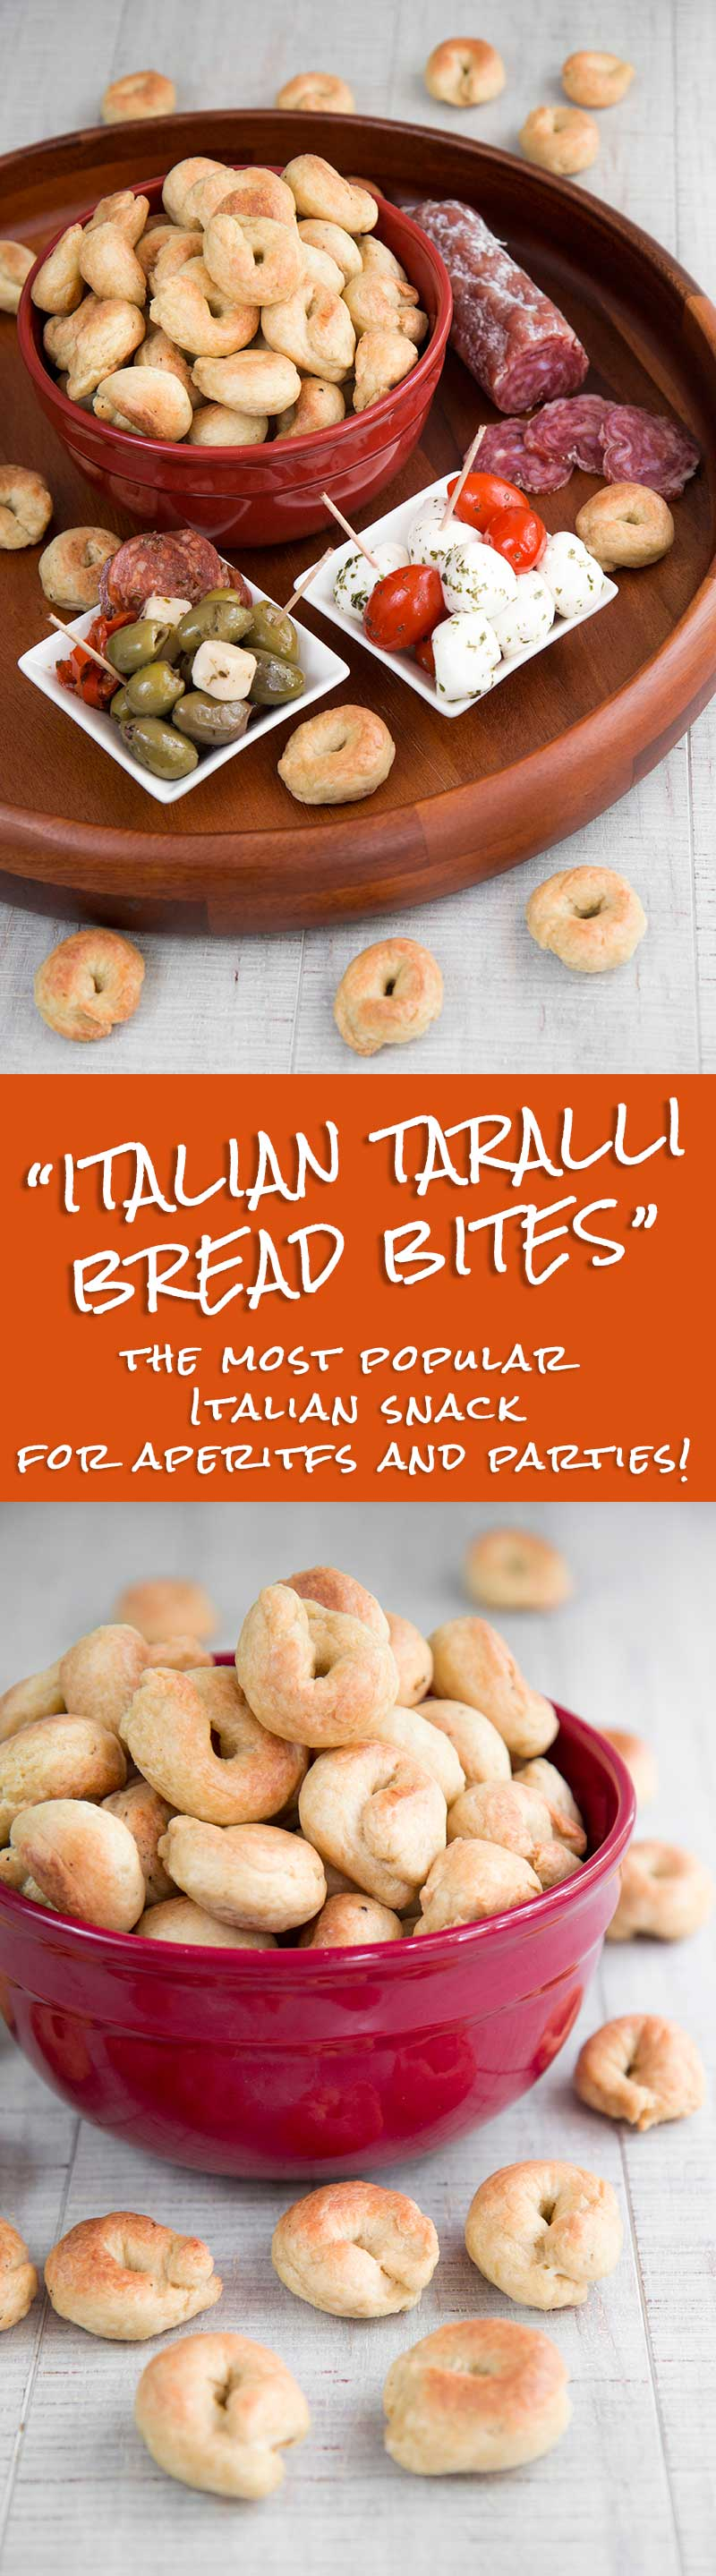 TARALLI RECIPE - Traditional Italian bread snacks for aperitifs and parties!